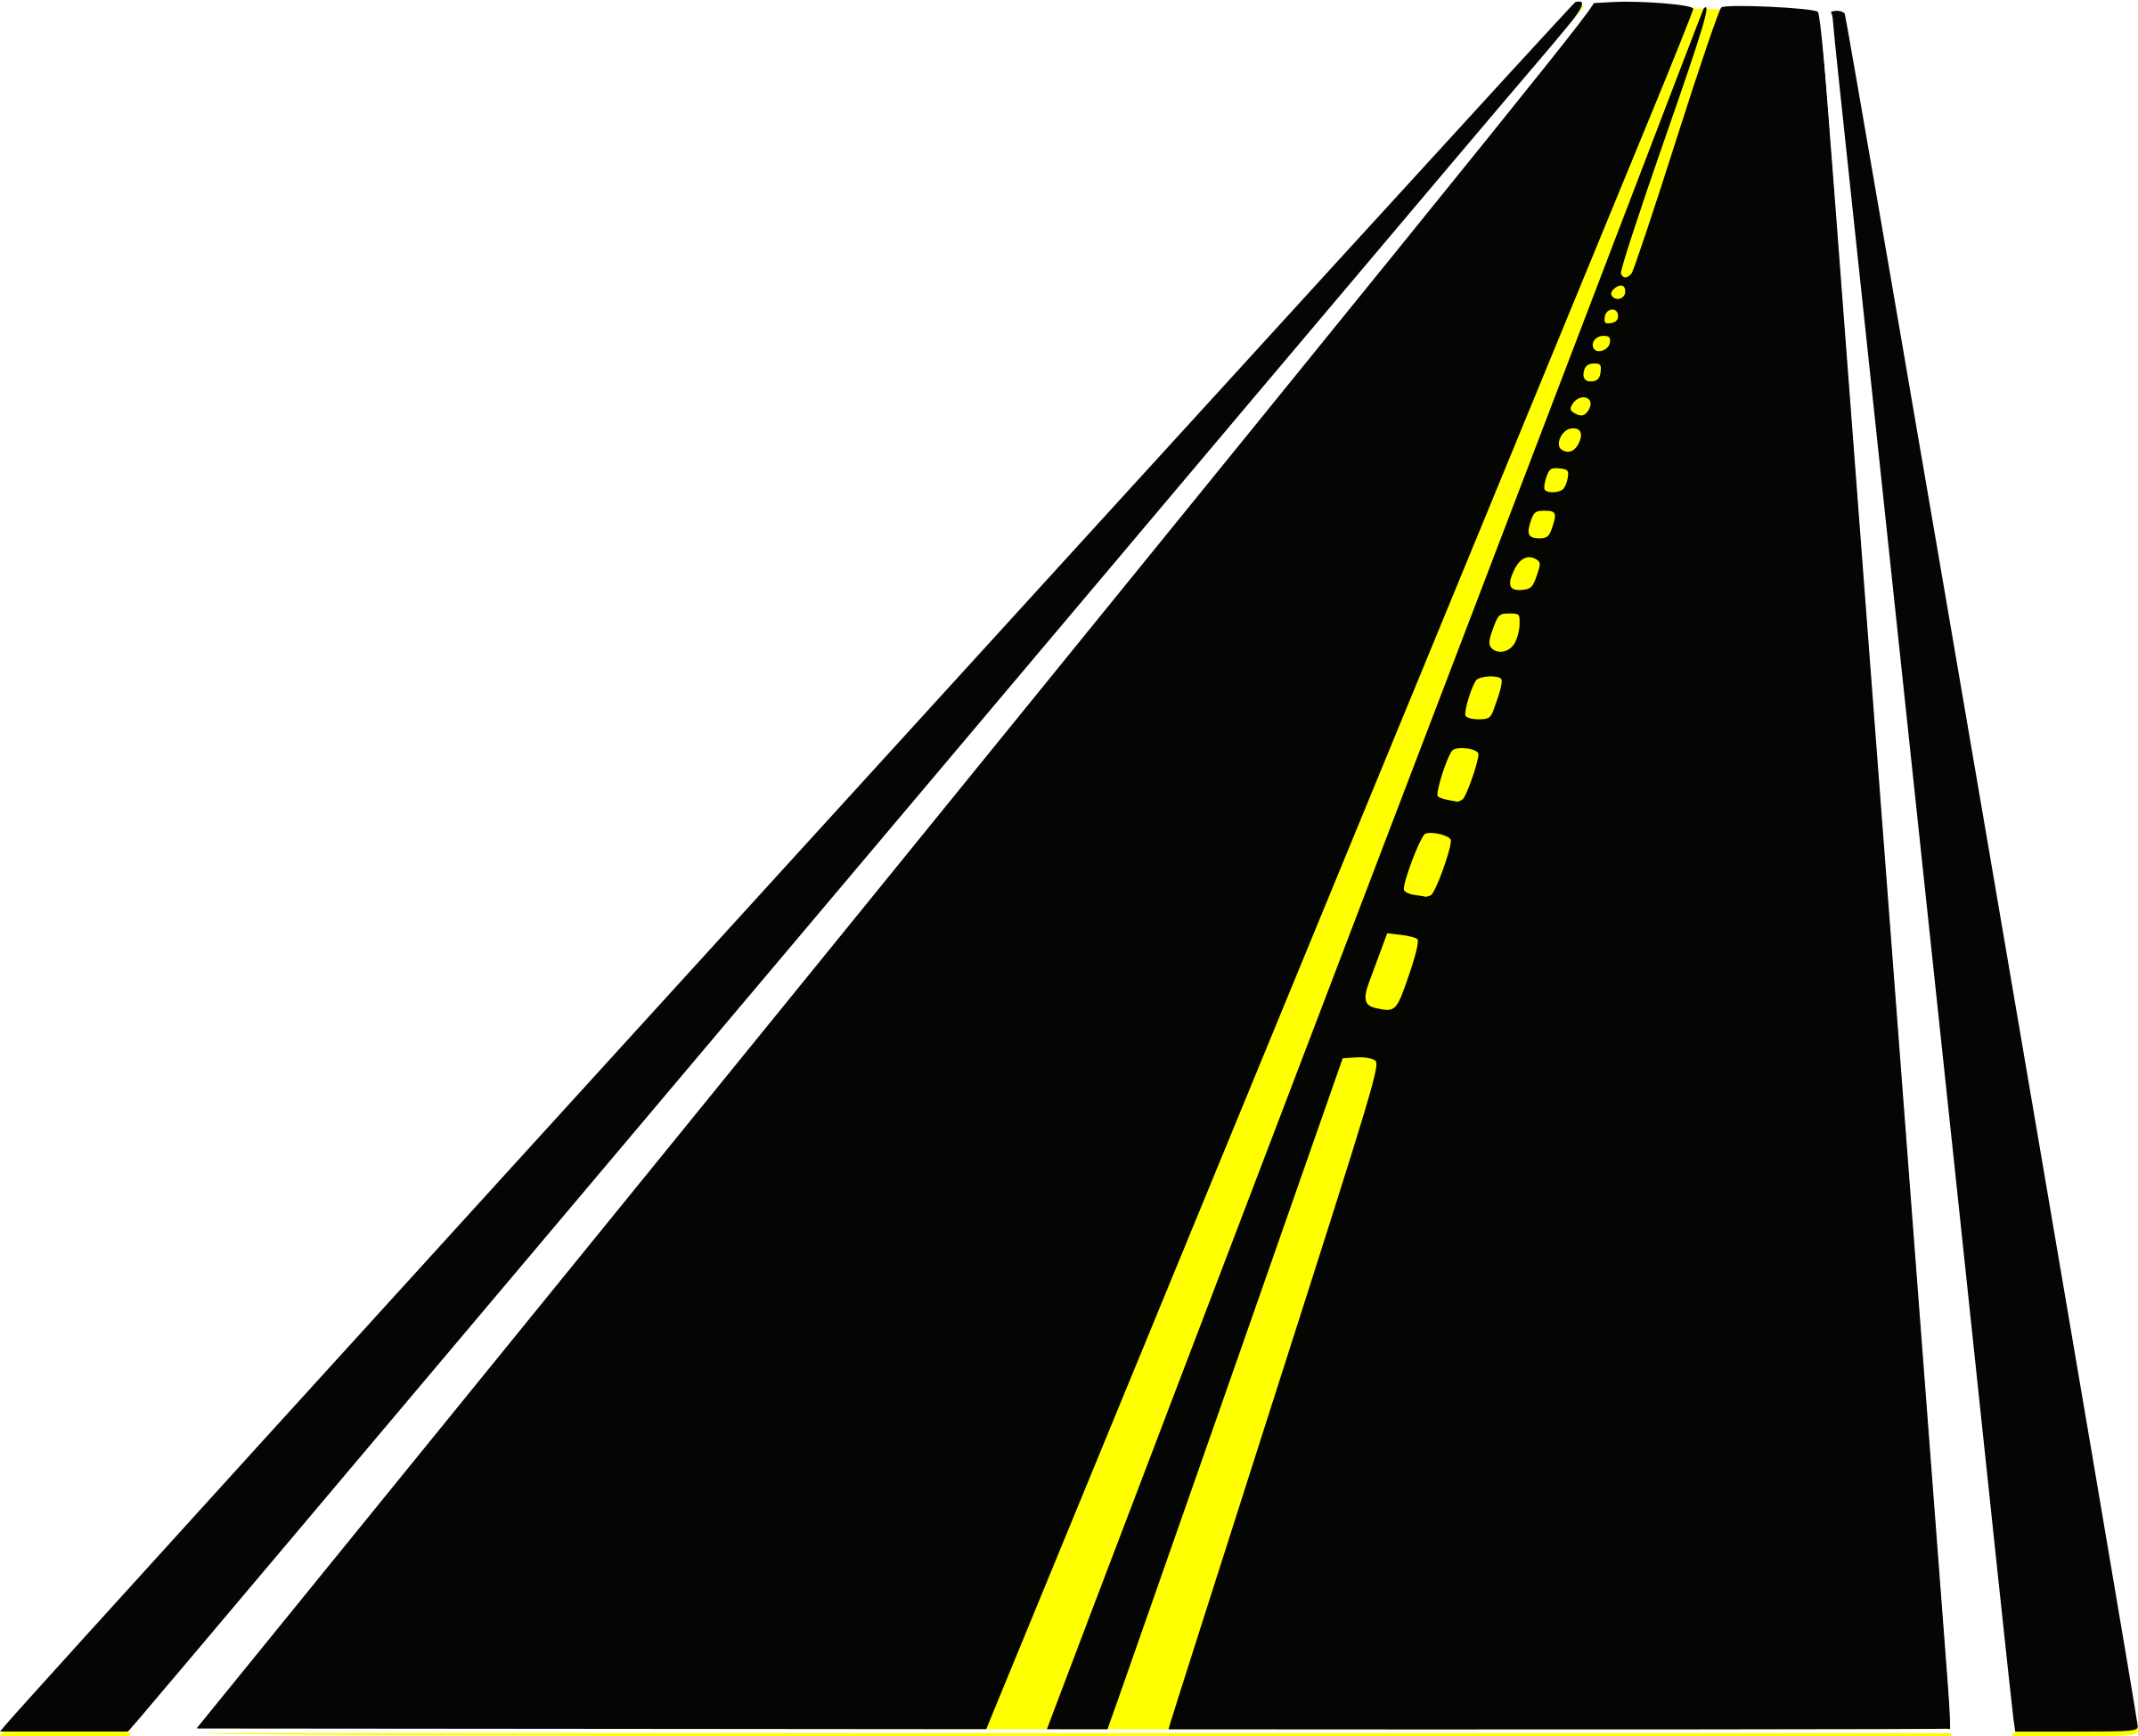 clipart stock Road ahead free on. Highway clipart.